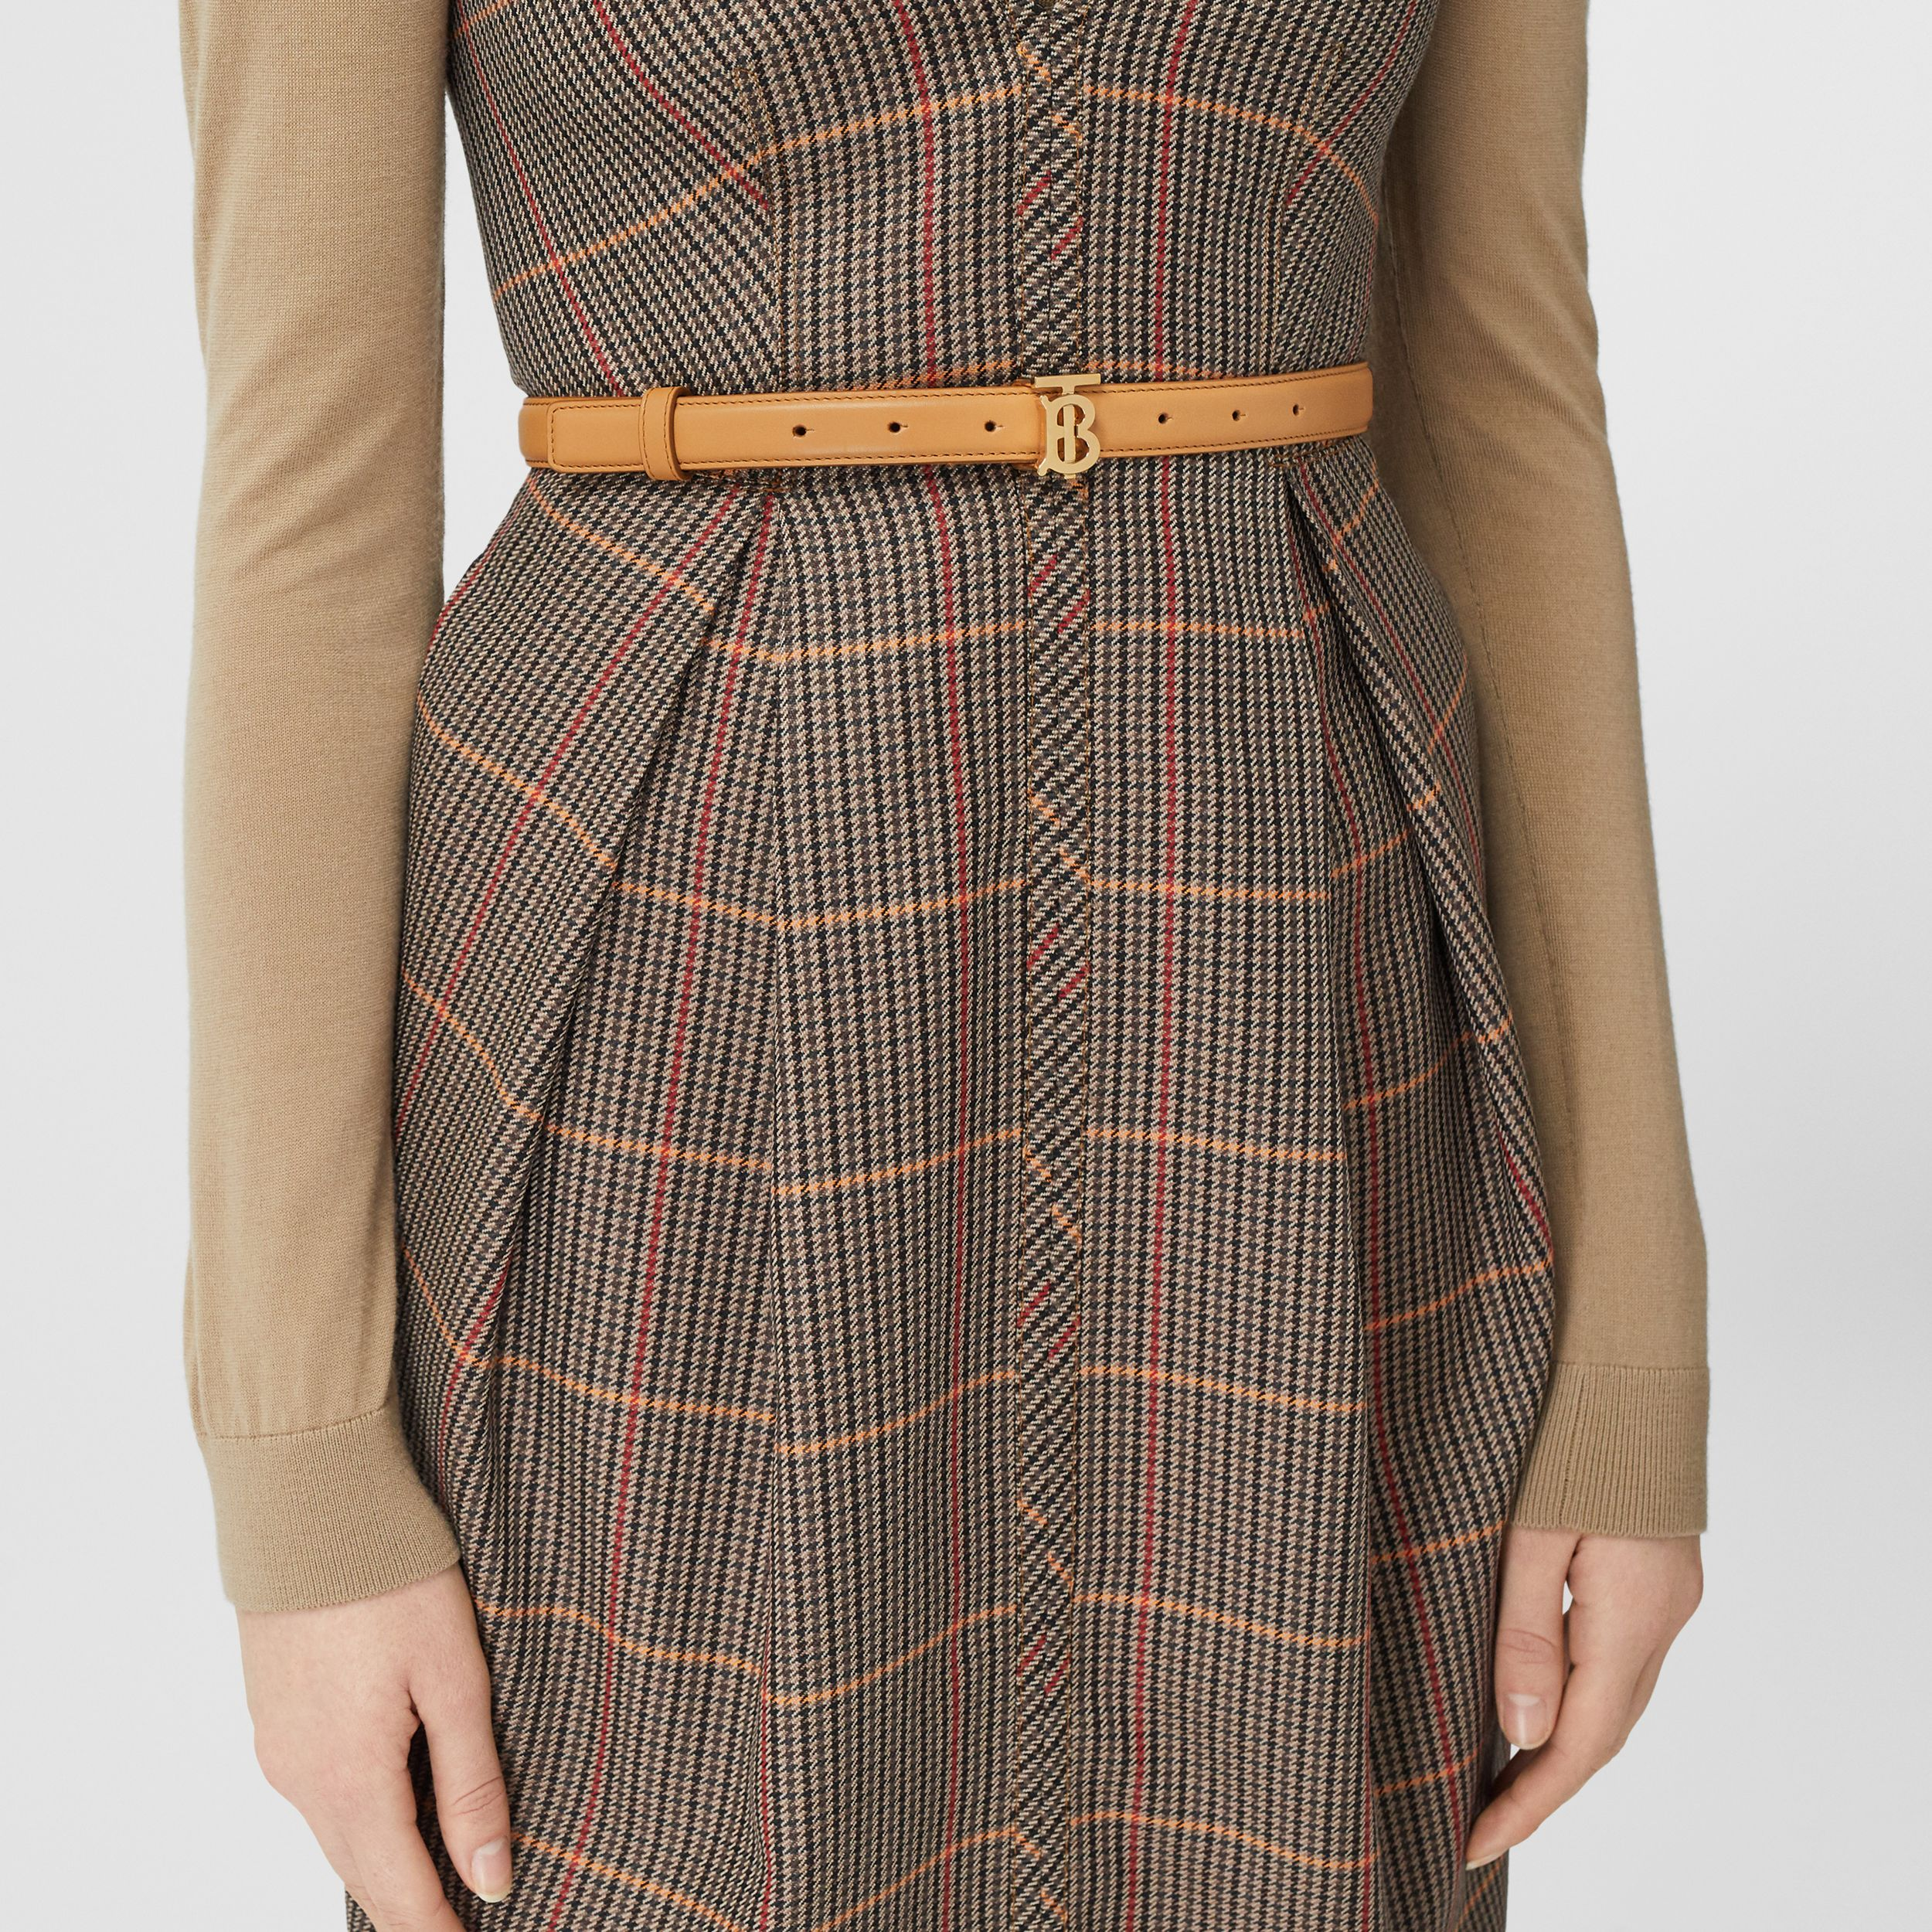 Monogram Motif Leather Belt in Warms Sand - Women | Burberry - 3